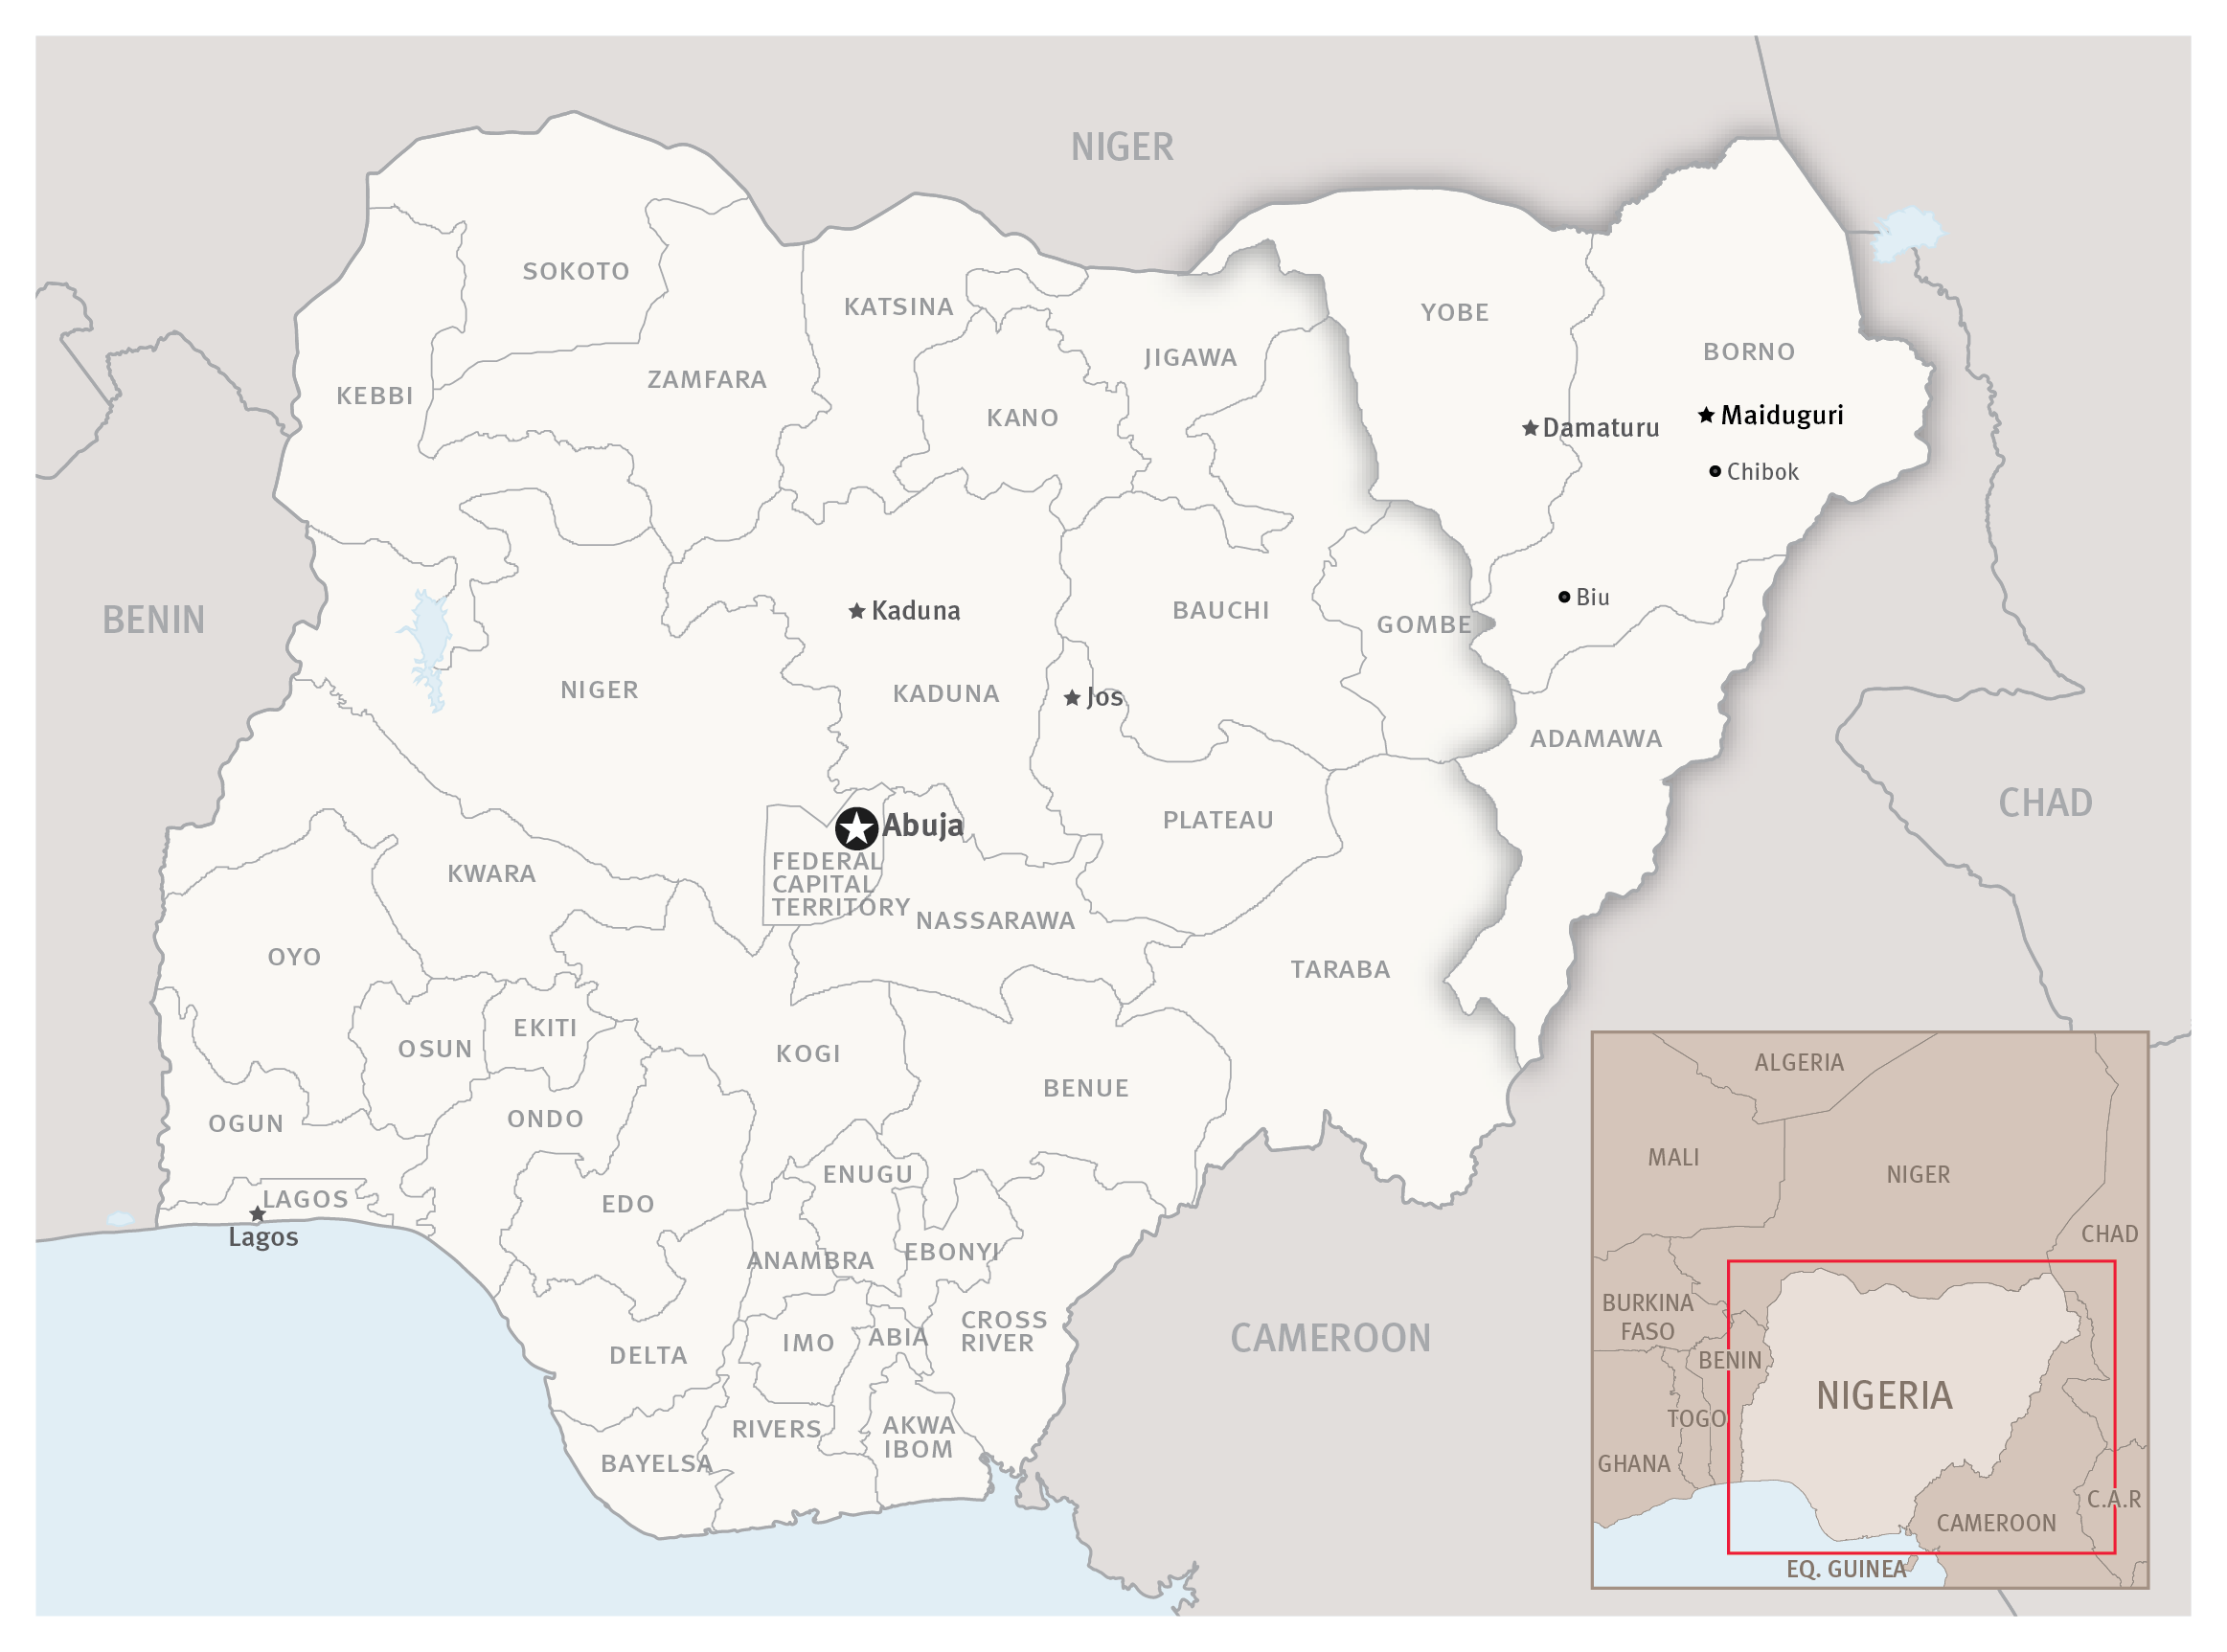 nigeria1014_map-01.png